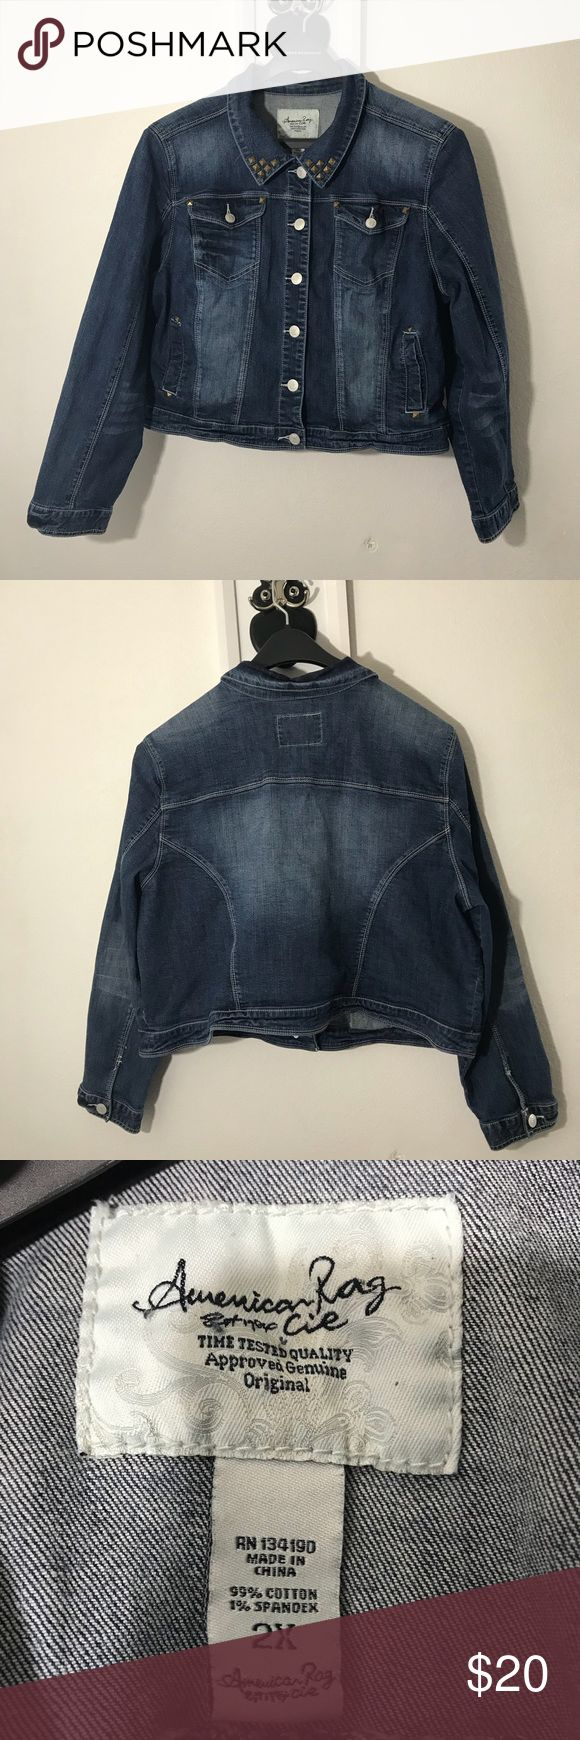 American Rag Denim Jacket Preowned-Denim jack with studs on the collar and front  pockets. No trades but open to reasonable offer American Rag Jackets & Coats Jean Jackets